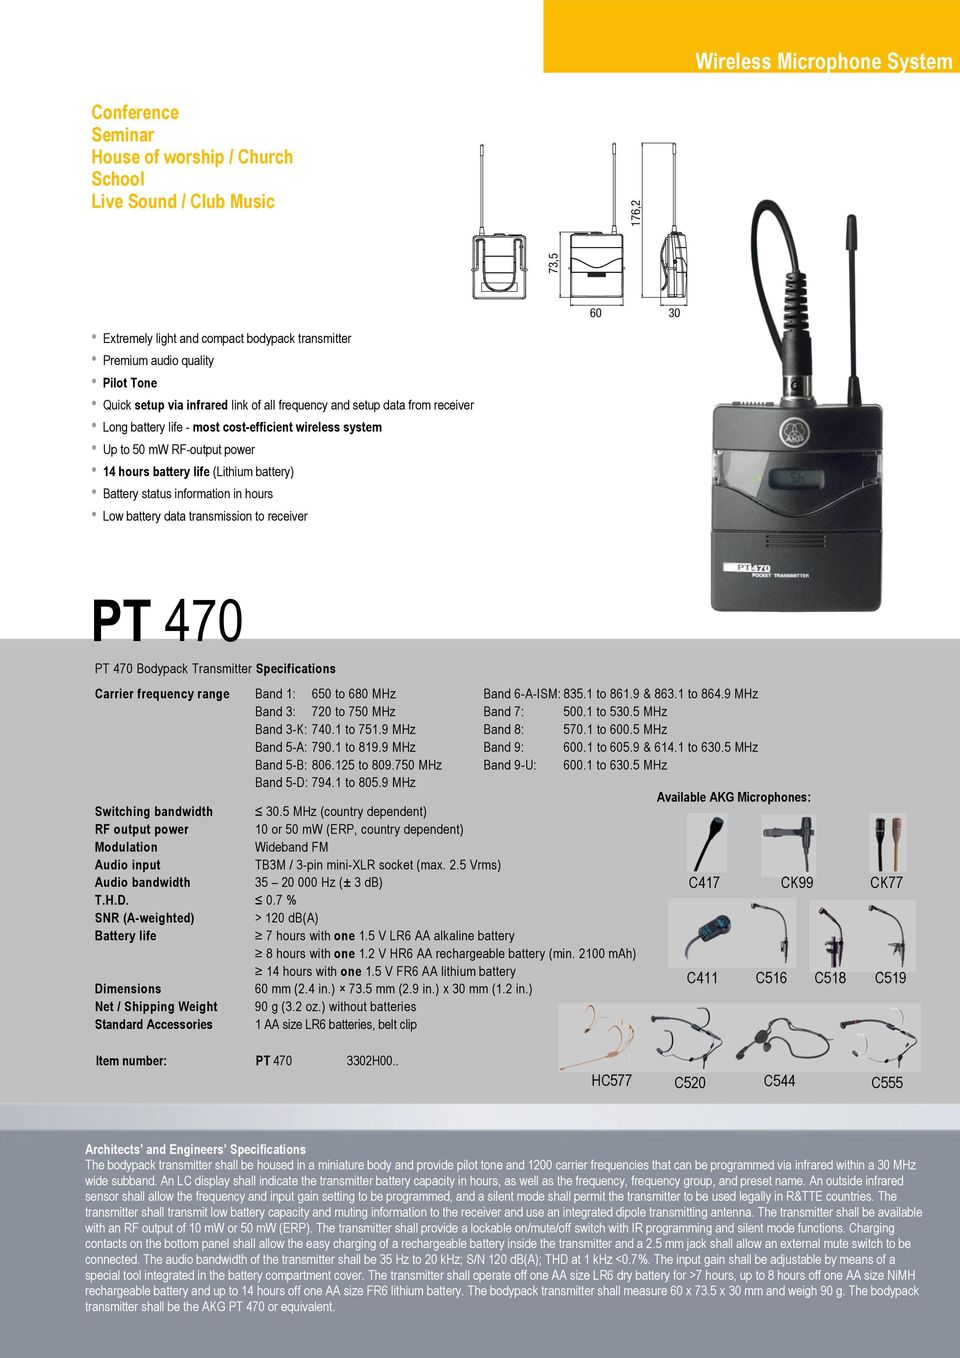 battery) Battery status information in hours Low battery data transmission to receiver PT 470 PT 470 Bodypack Transmitter Specifications Carrier frequency range Band 1: 650 to 680 MHz Band 6-A-ISM: